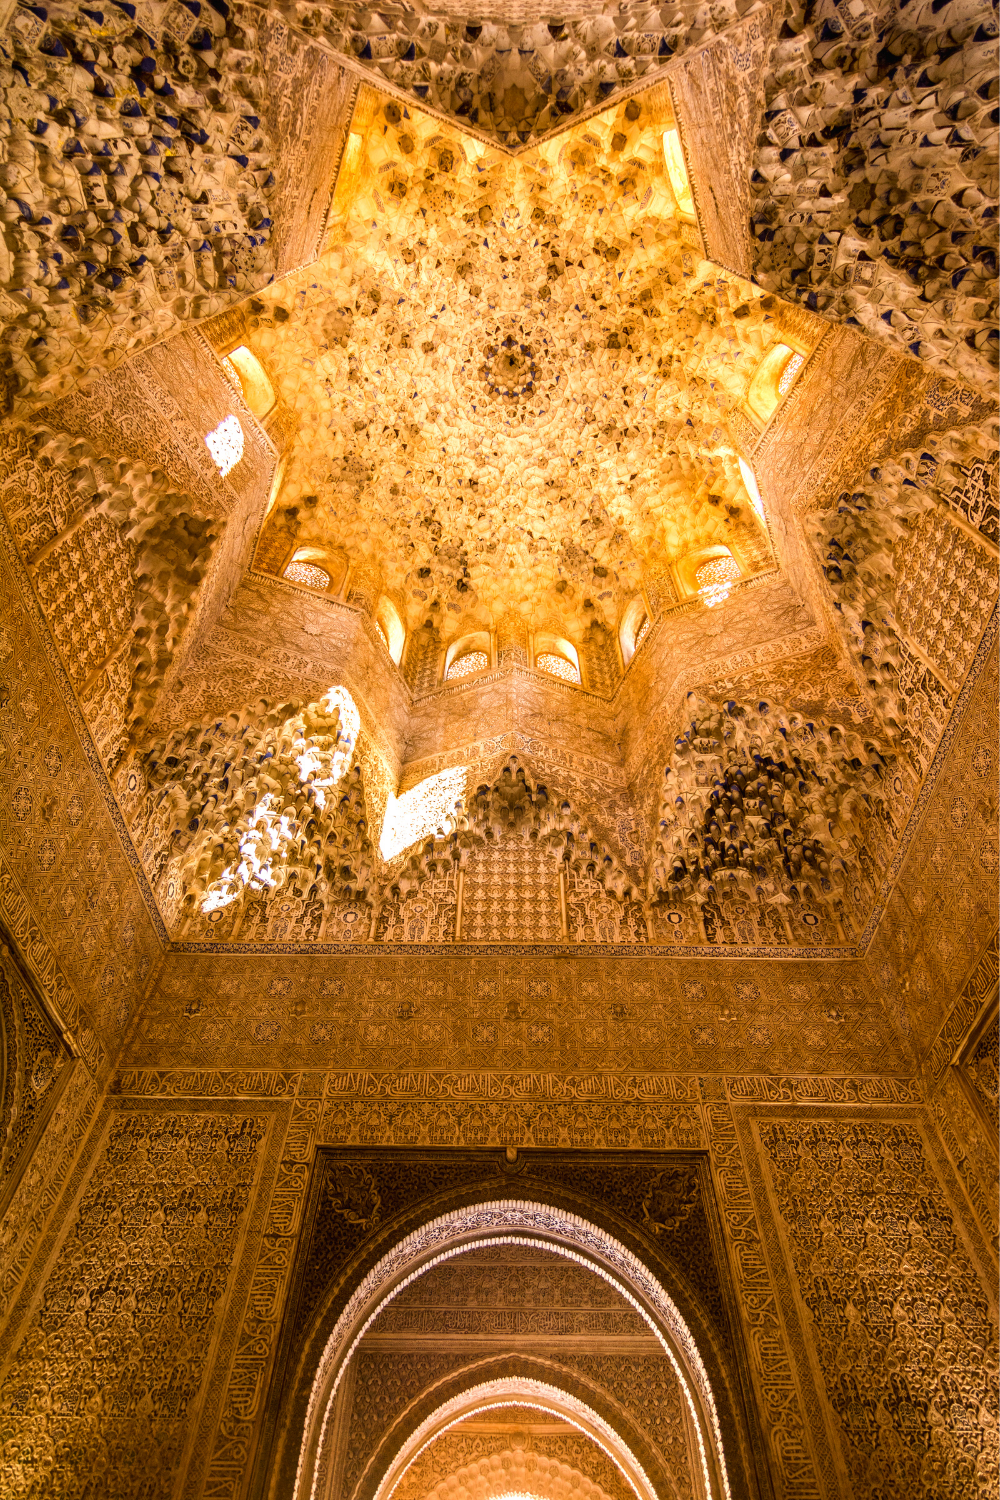 domed ceiling of the Grand Hall of Ambassadors in the Nasrid Palace